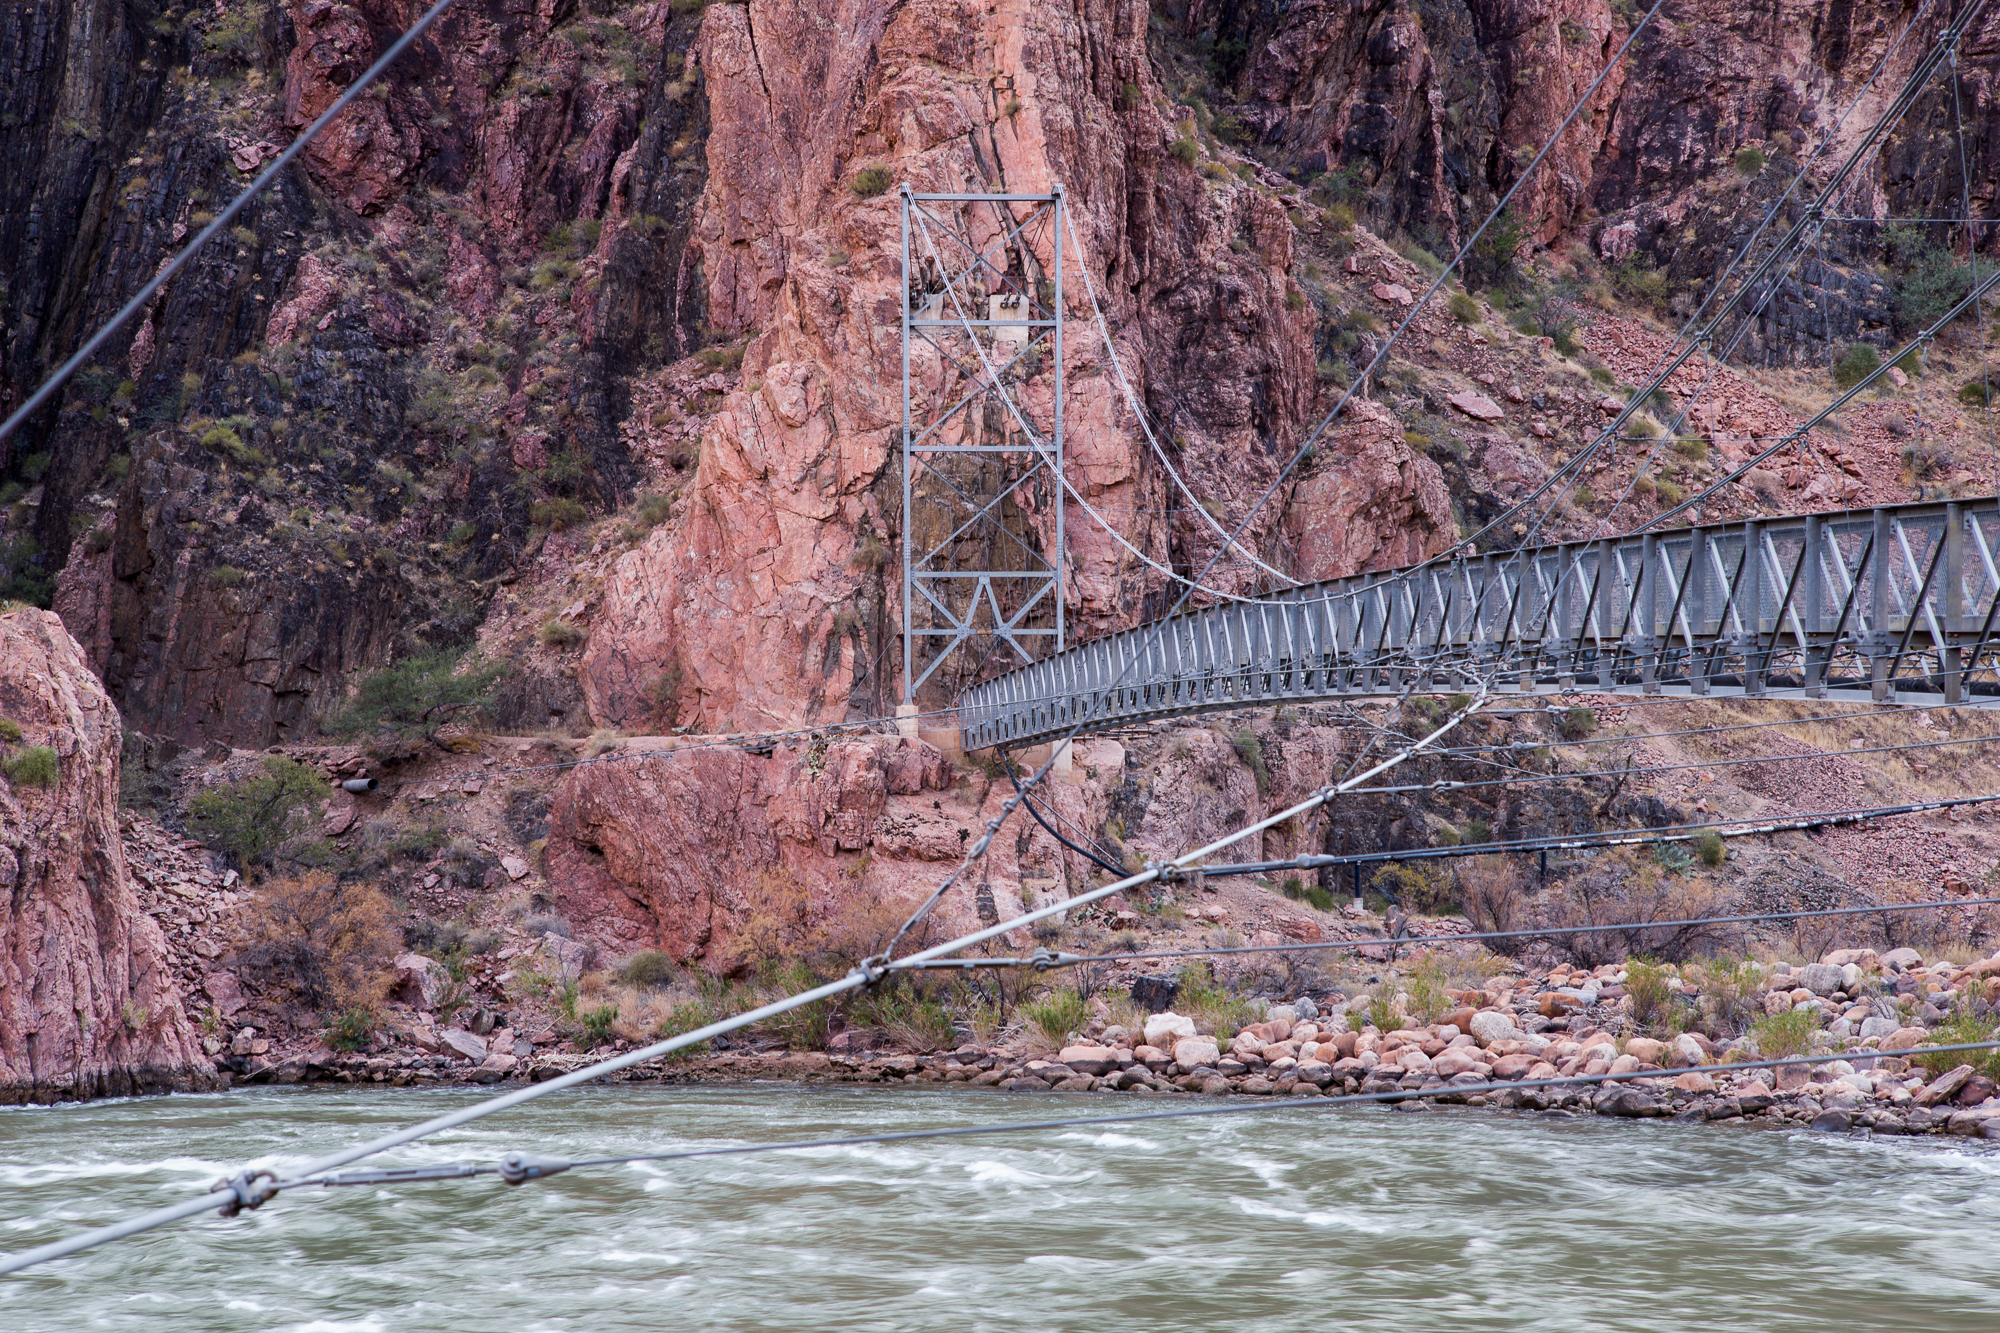 The Silver Bridge carries hikers and water to Indian Garden